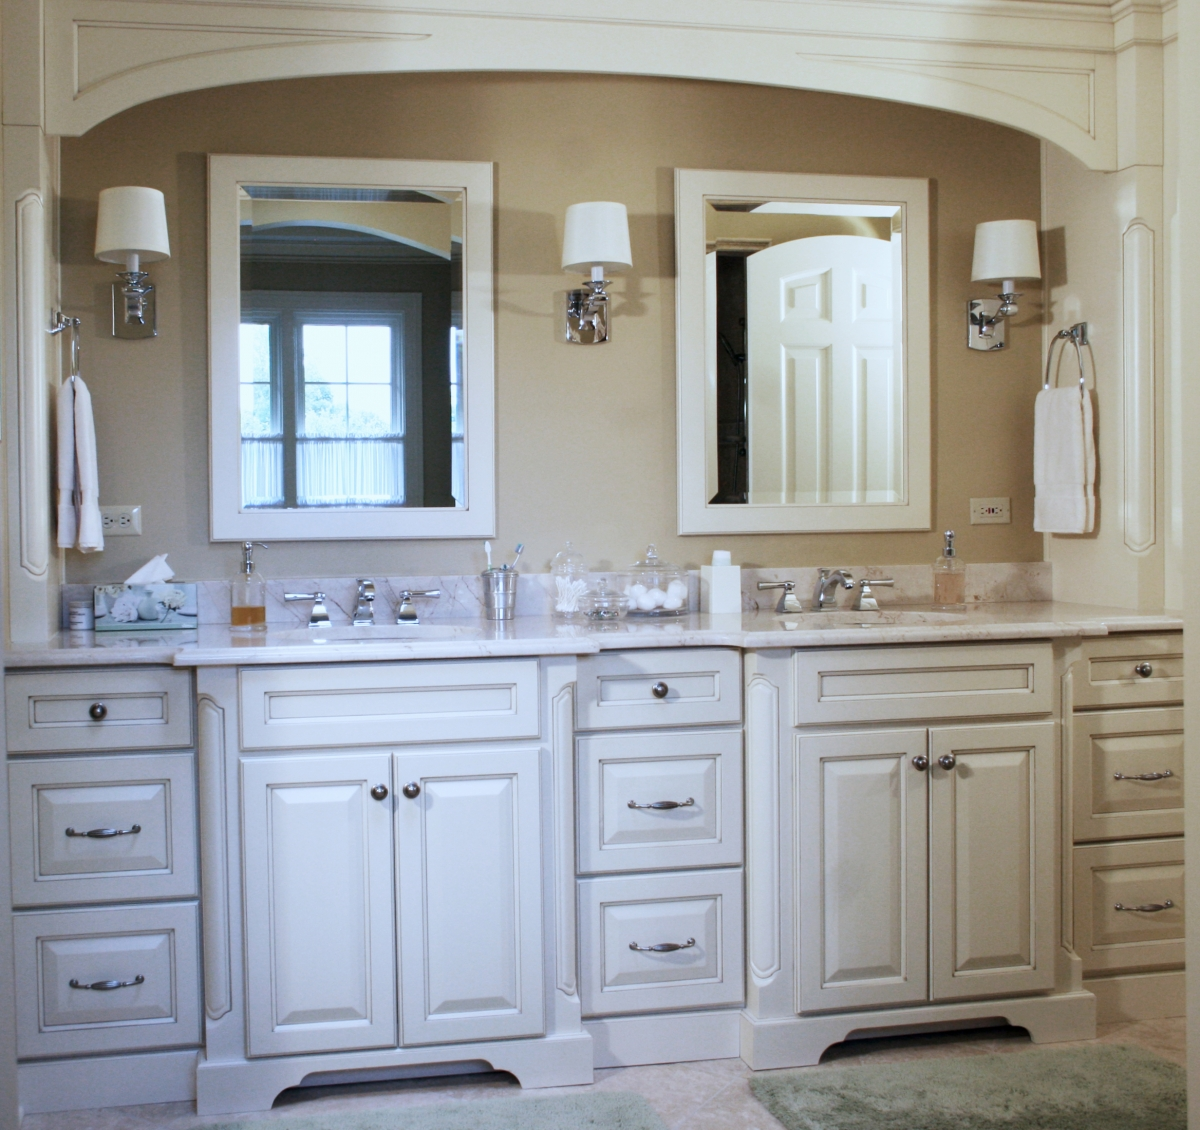 Custom 60 Custom Bathroom Vanities Naperville Design Ideas Of Vanity Towers Take Bathroom